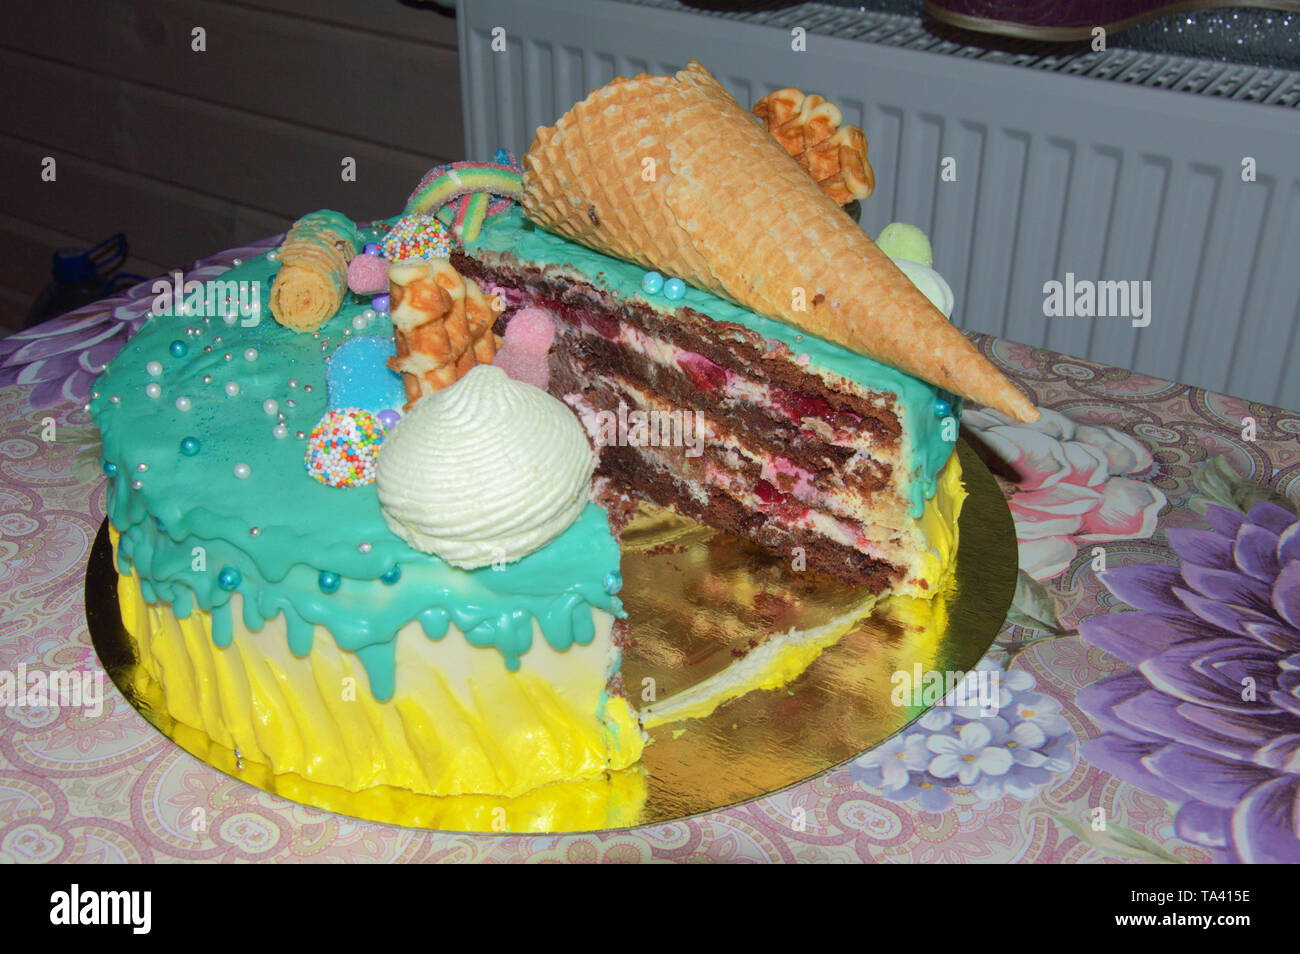 Remarkable Beautiful Birthday Cake In Icing With Fillings Of Fruit Funny Birthday Cards Online Inifodamsfinfo